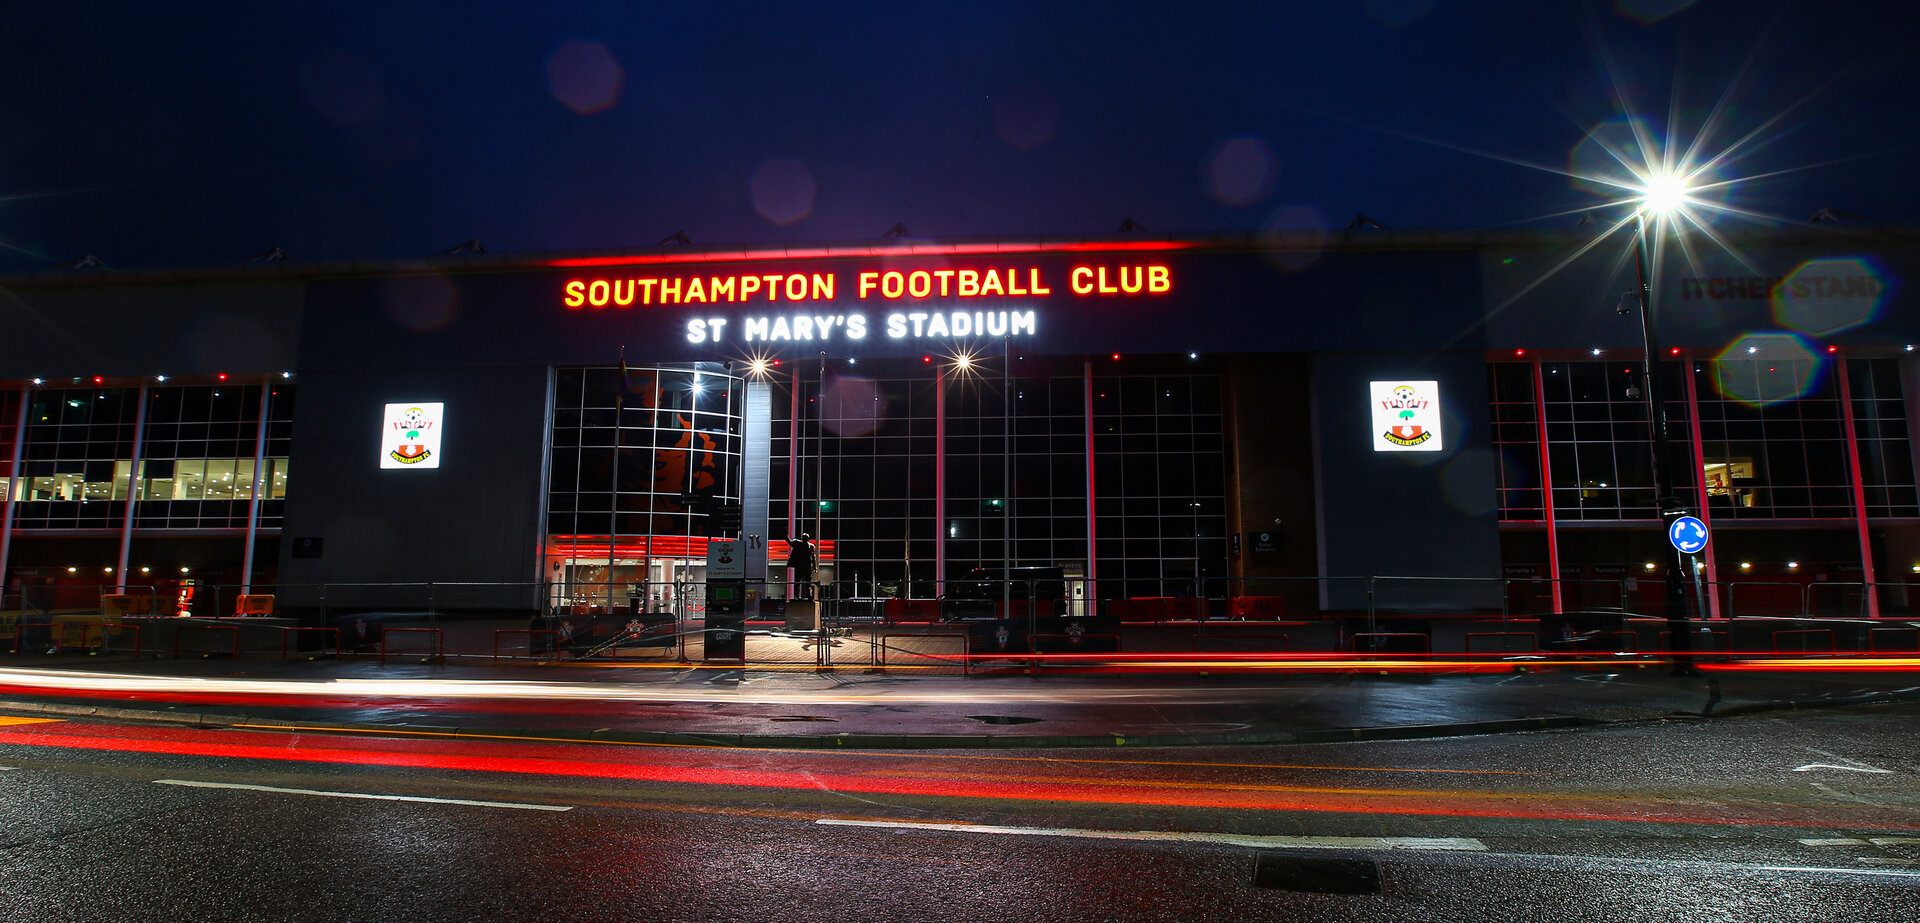 SOUTHAMPTON, ENGLAND - JANUARY 19: Stock Images of St Mary's, ahead of FA Cup match agiasnt Shrewsbury Town at St Mary's Stadium on January 19 2021 (Photo by Isabelle Field/Southampton FC via Getty Images)